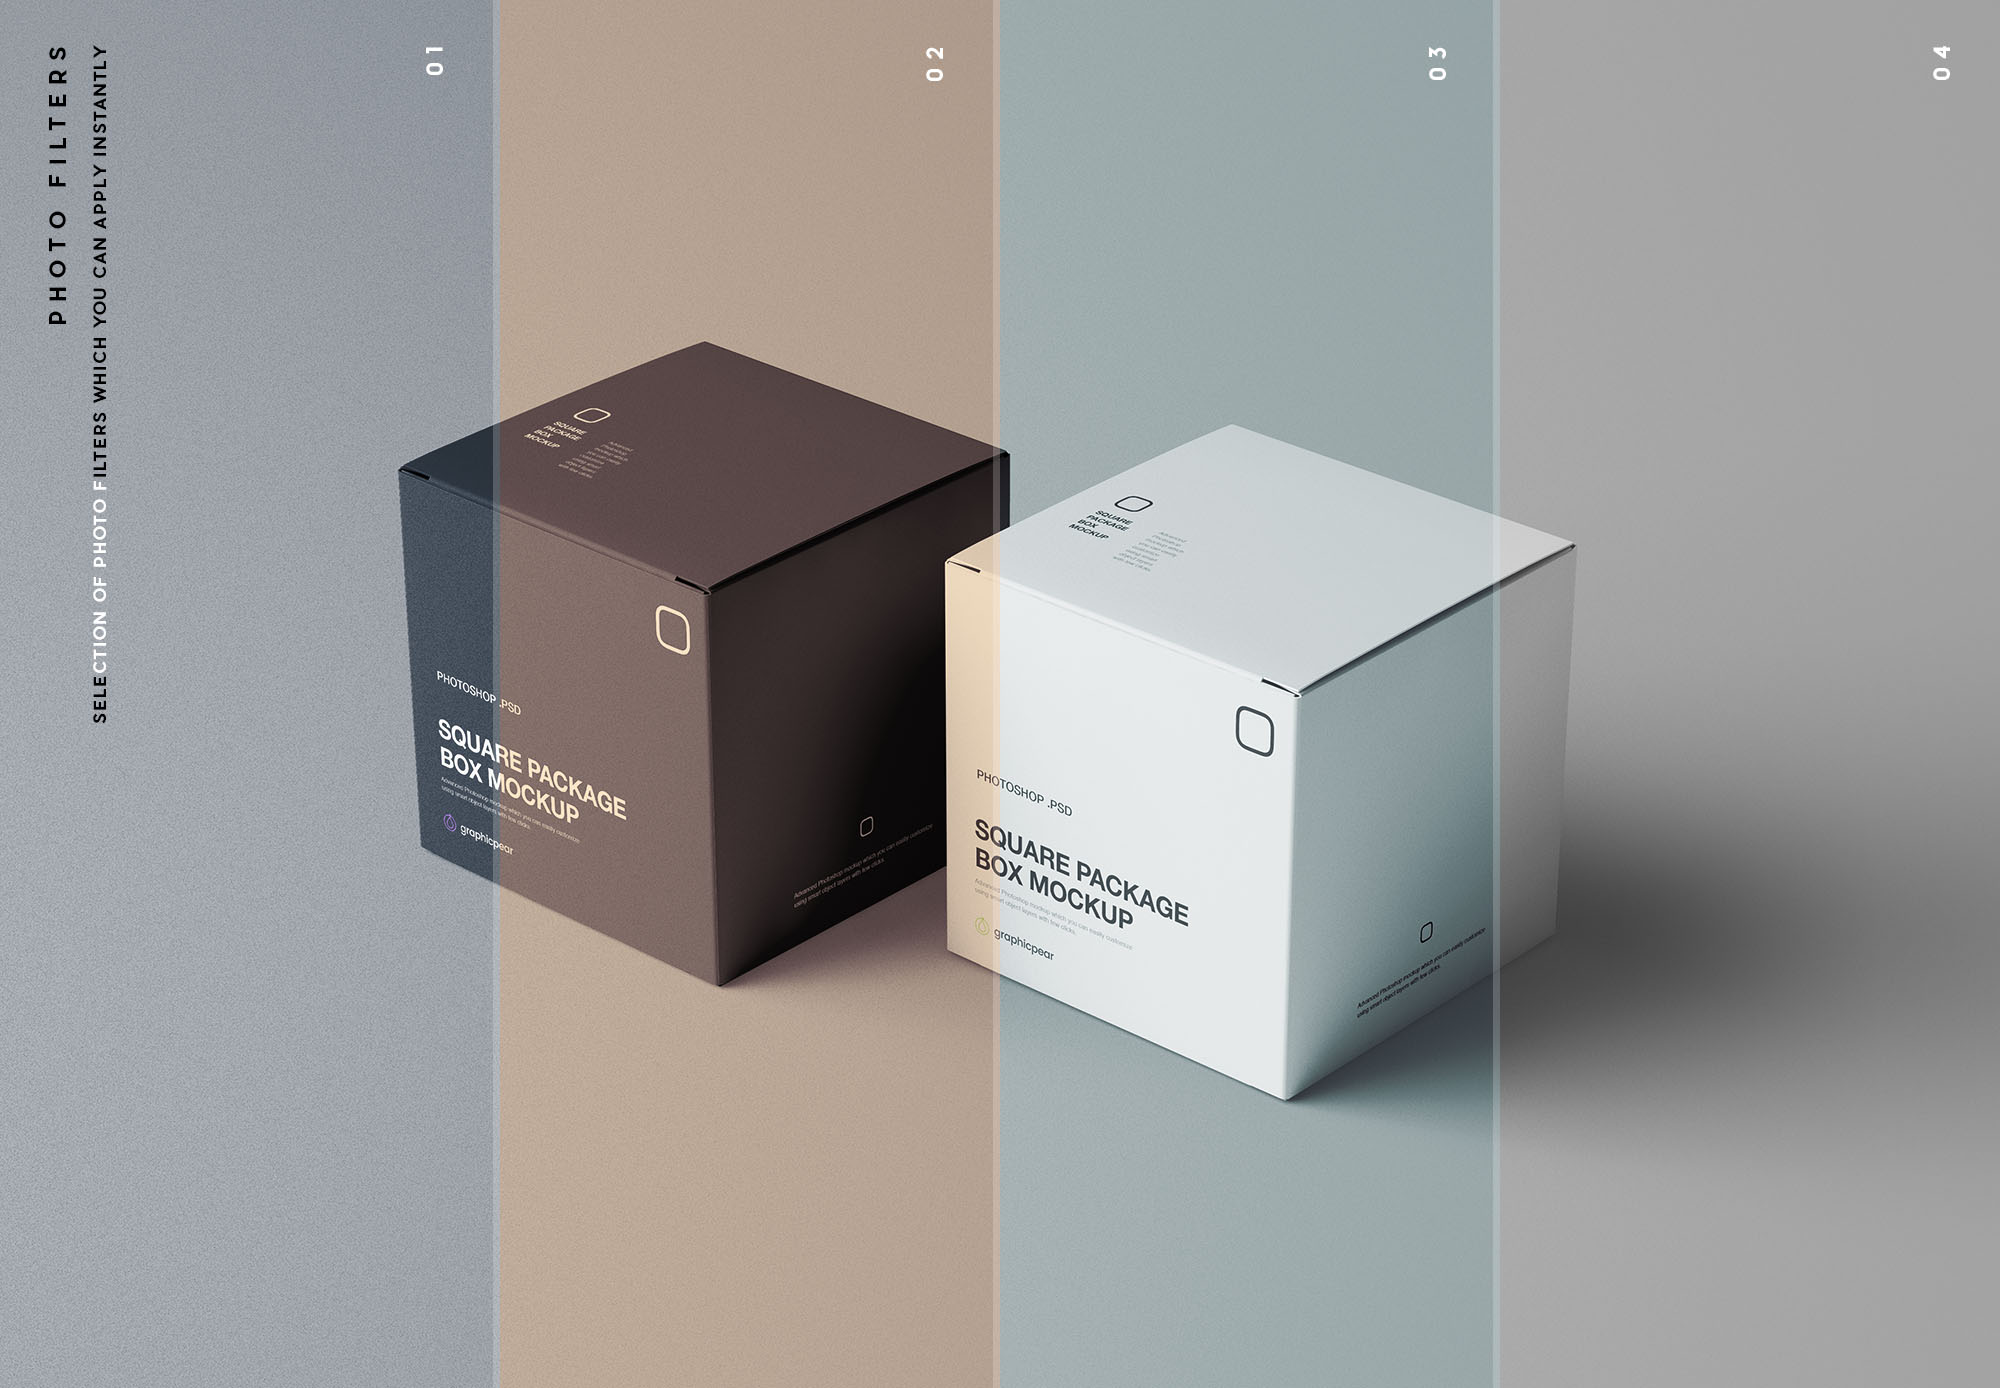 Square Package Box Mockup Filters